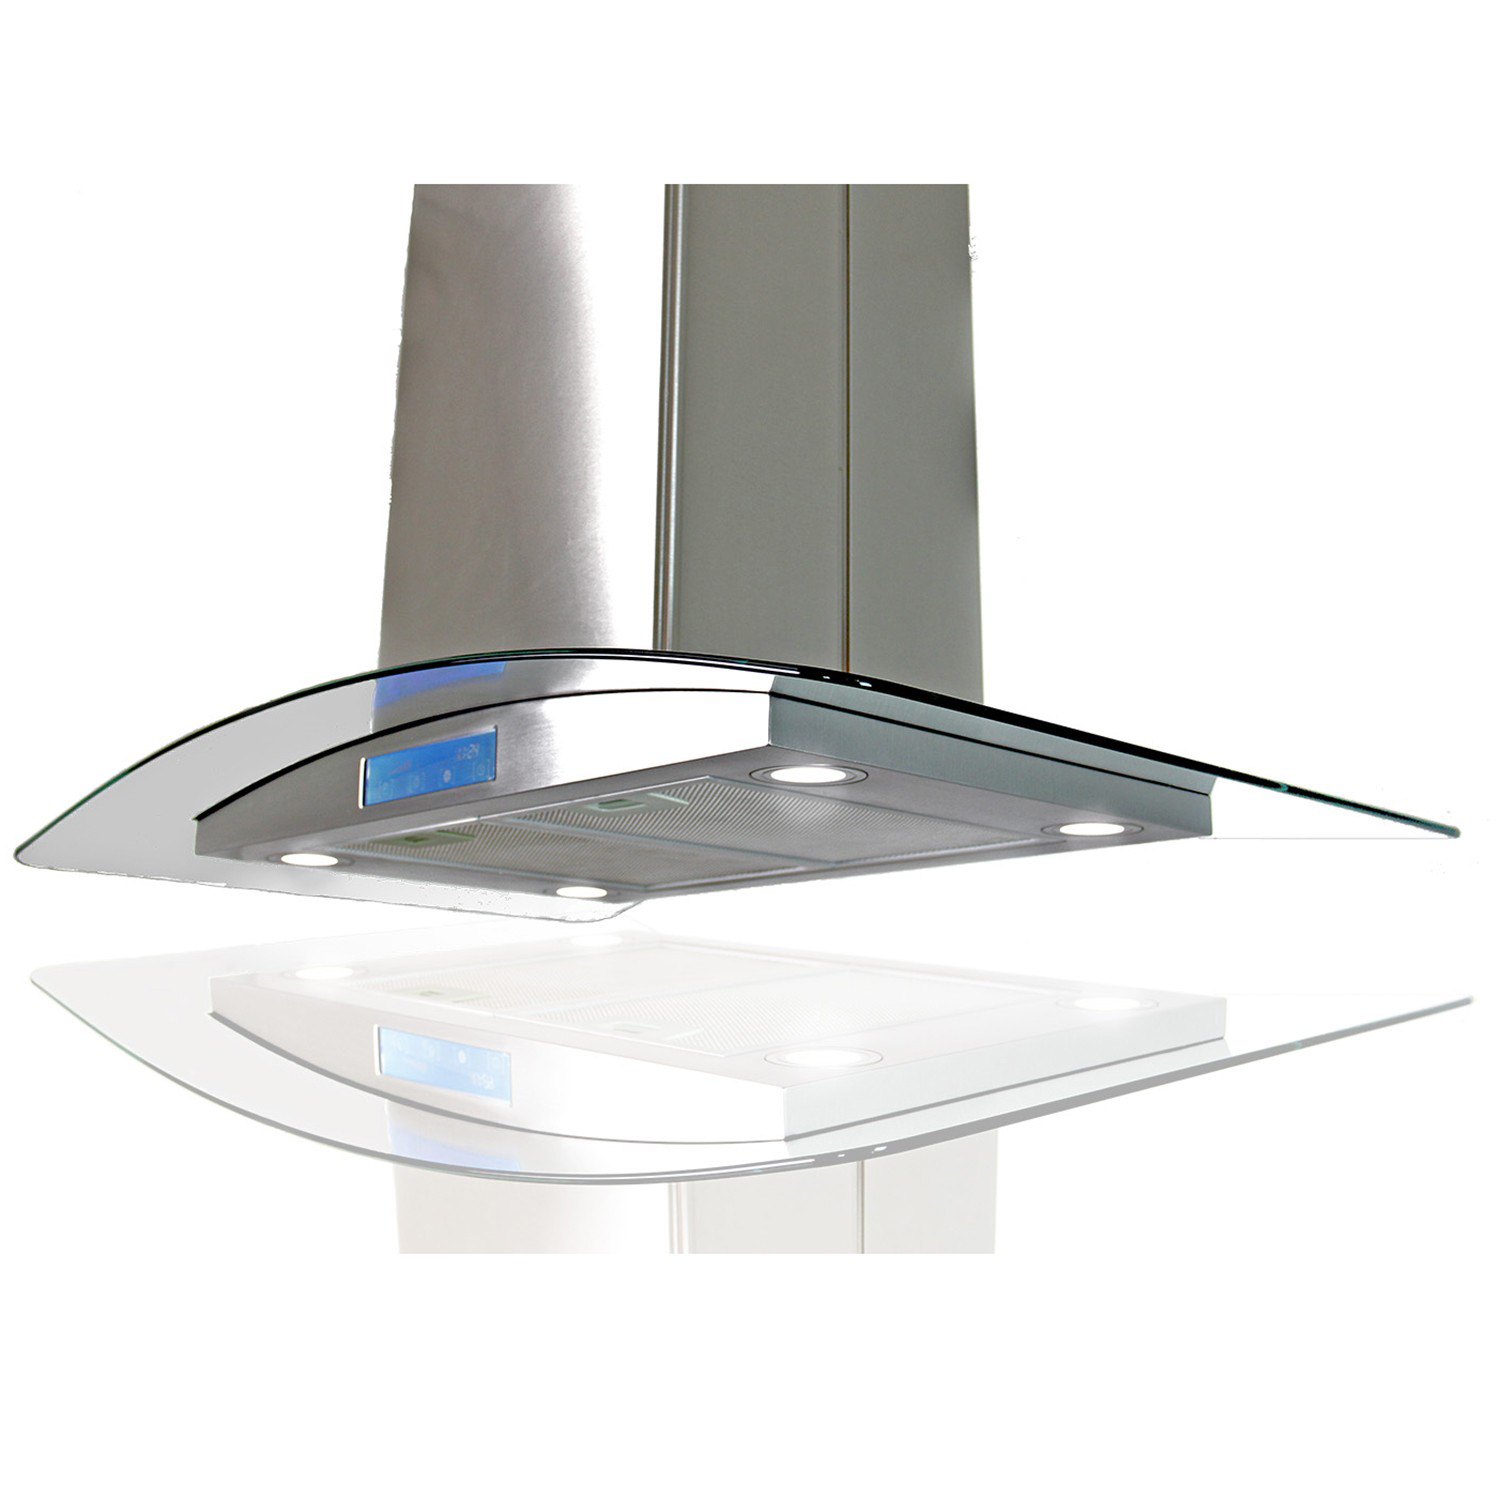 "AKDY AK-668IS2-36 36"" Island Mount Range Hood 870 CFM - AIR68S236 - Image 1"